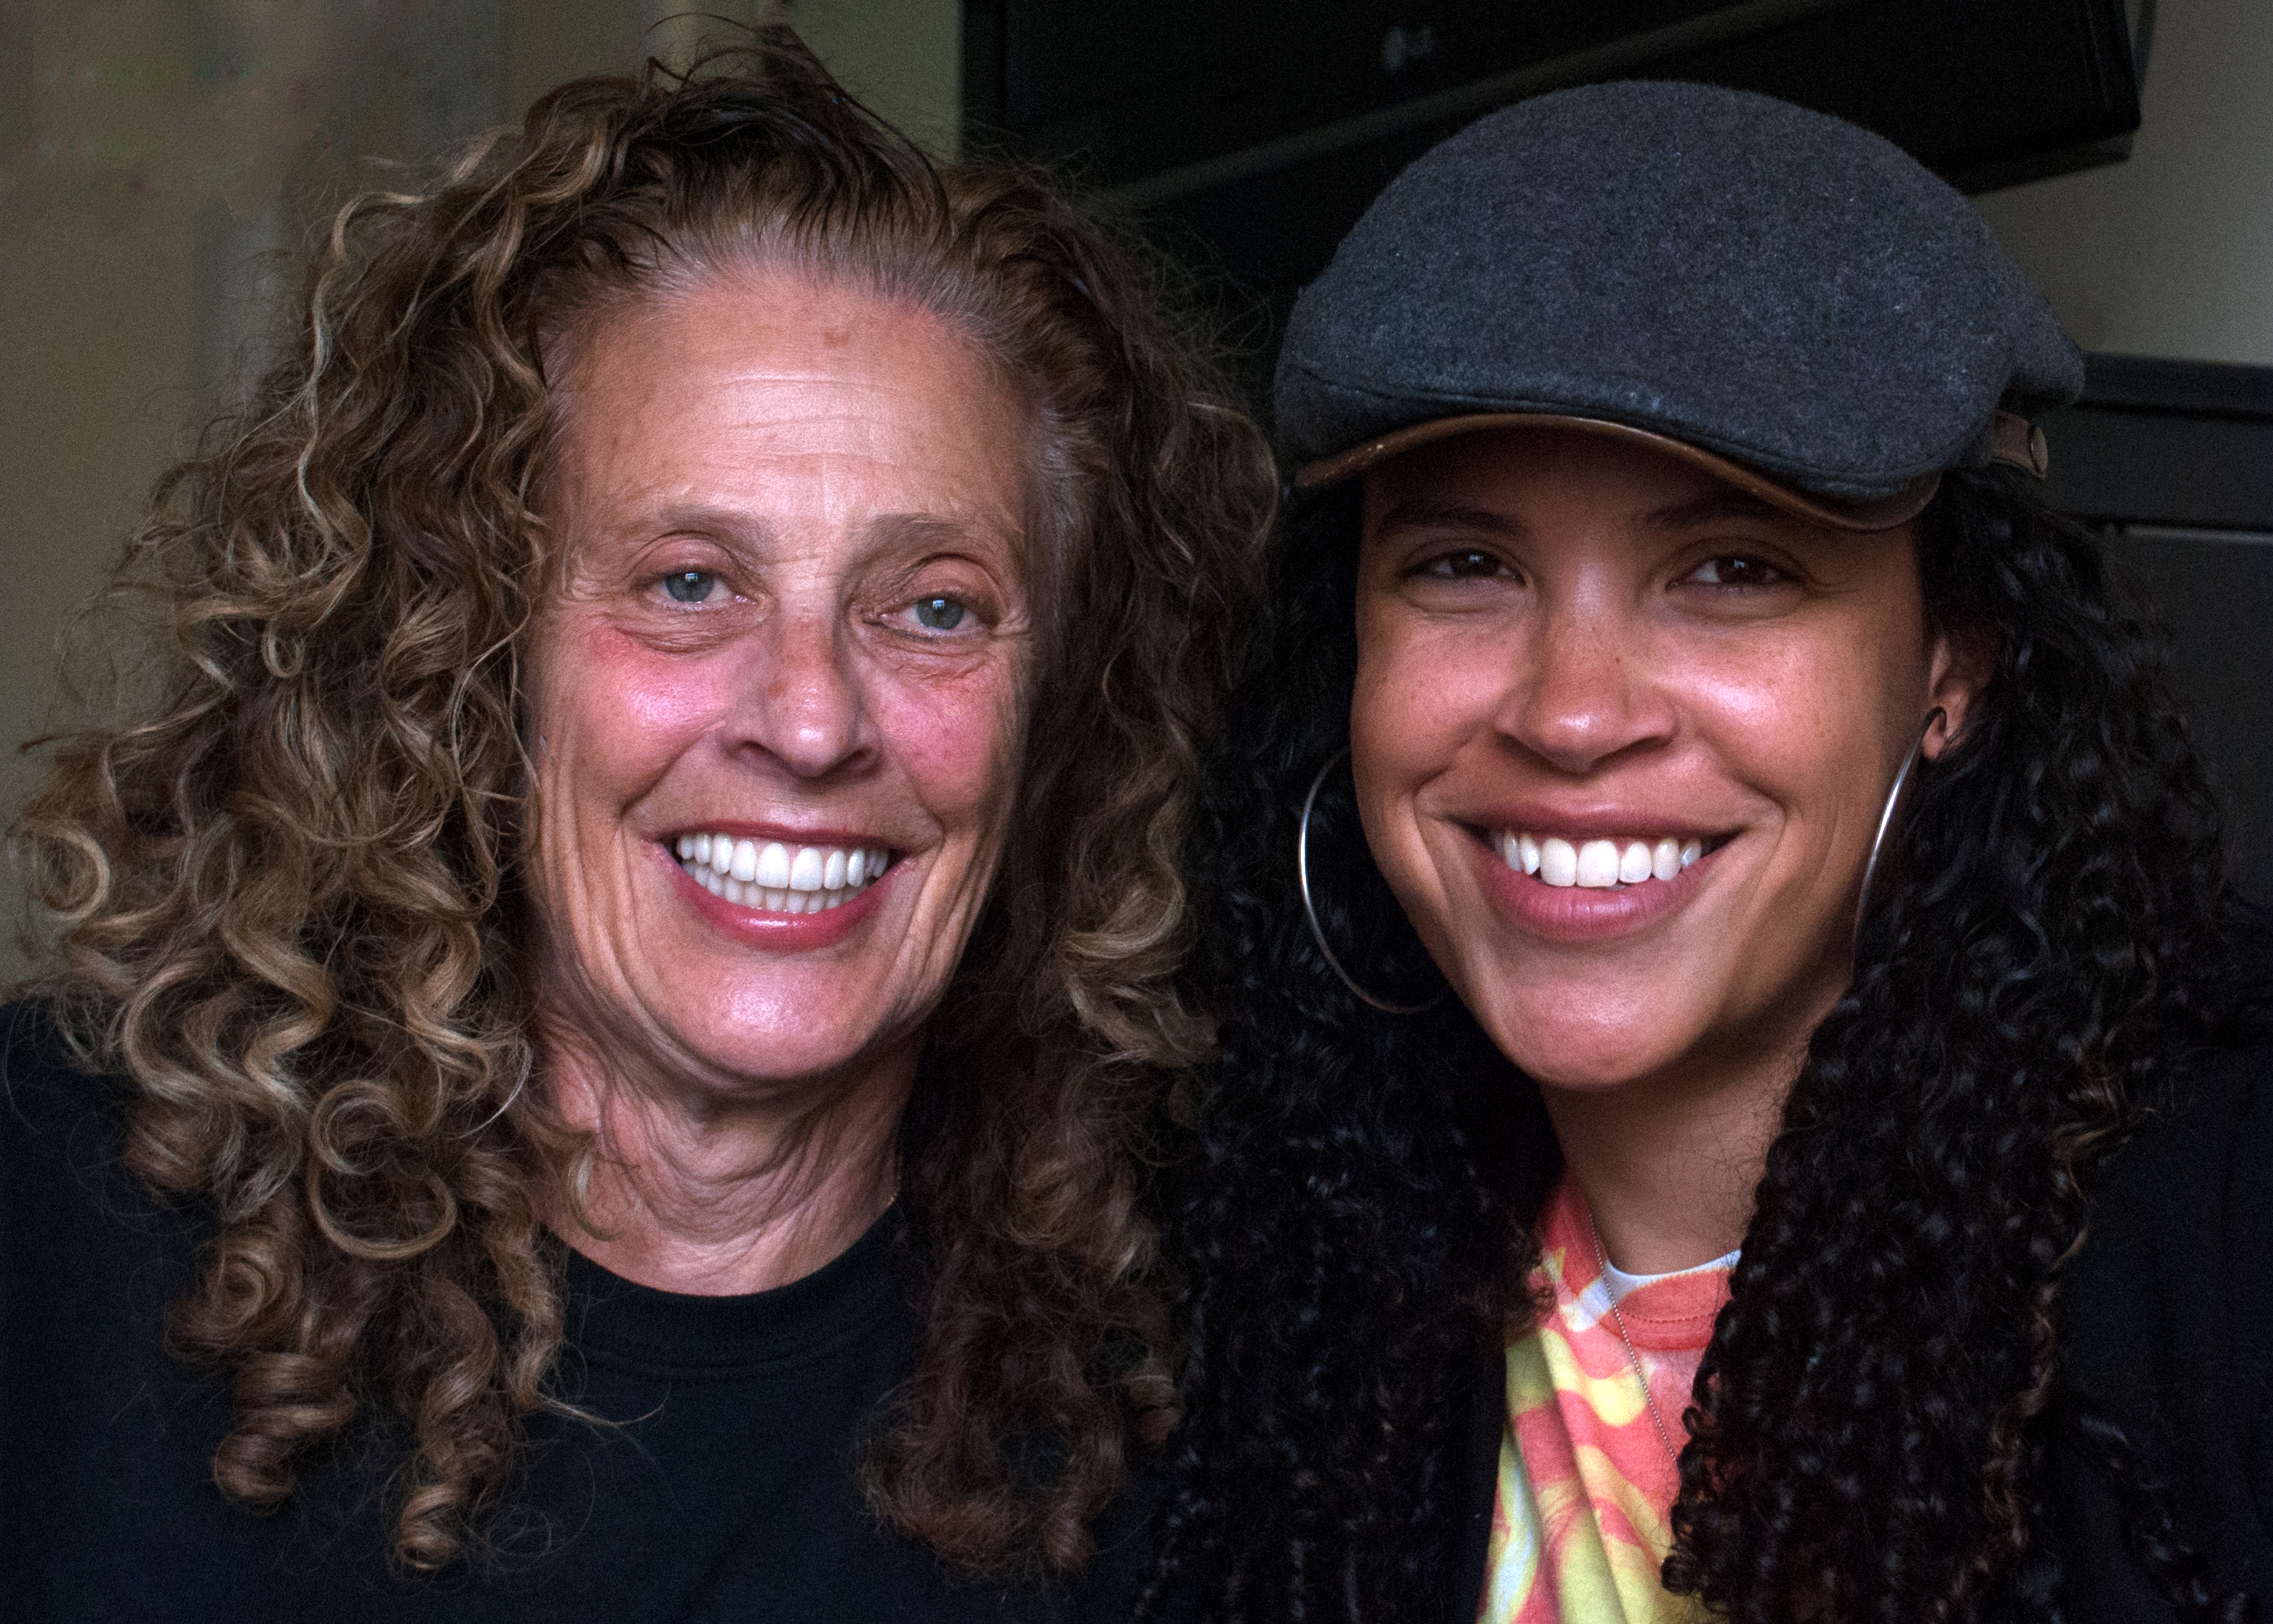 Caption: Peggy & Lacey Schwartz, San Francisco, CA  8/5/14, Credit: Andrea Chase